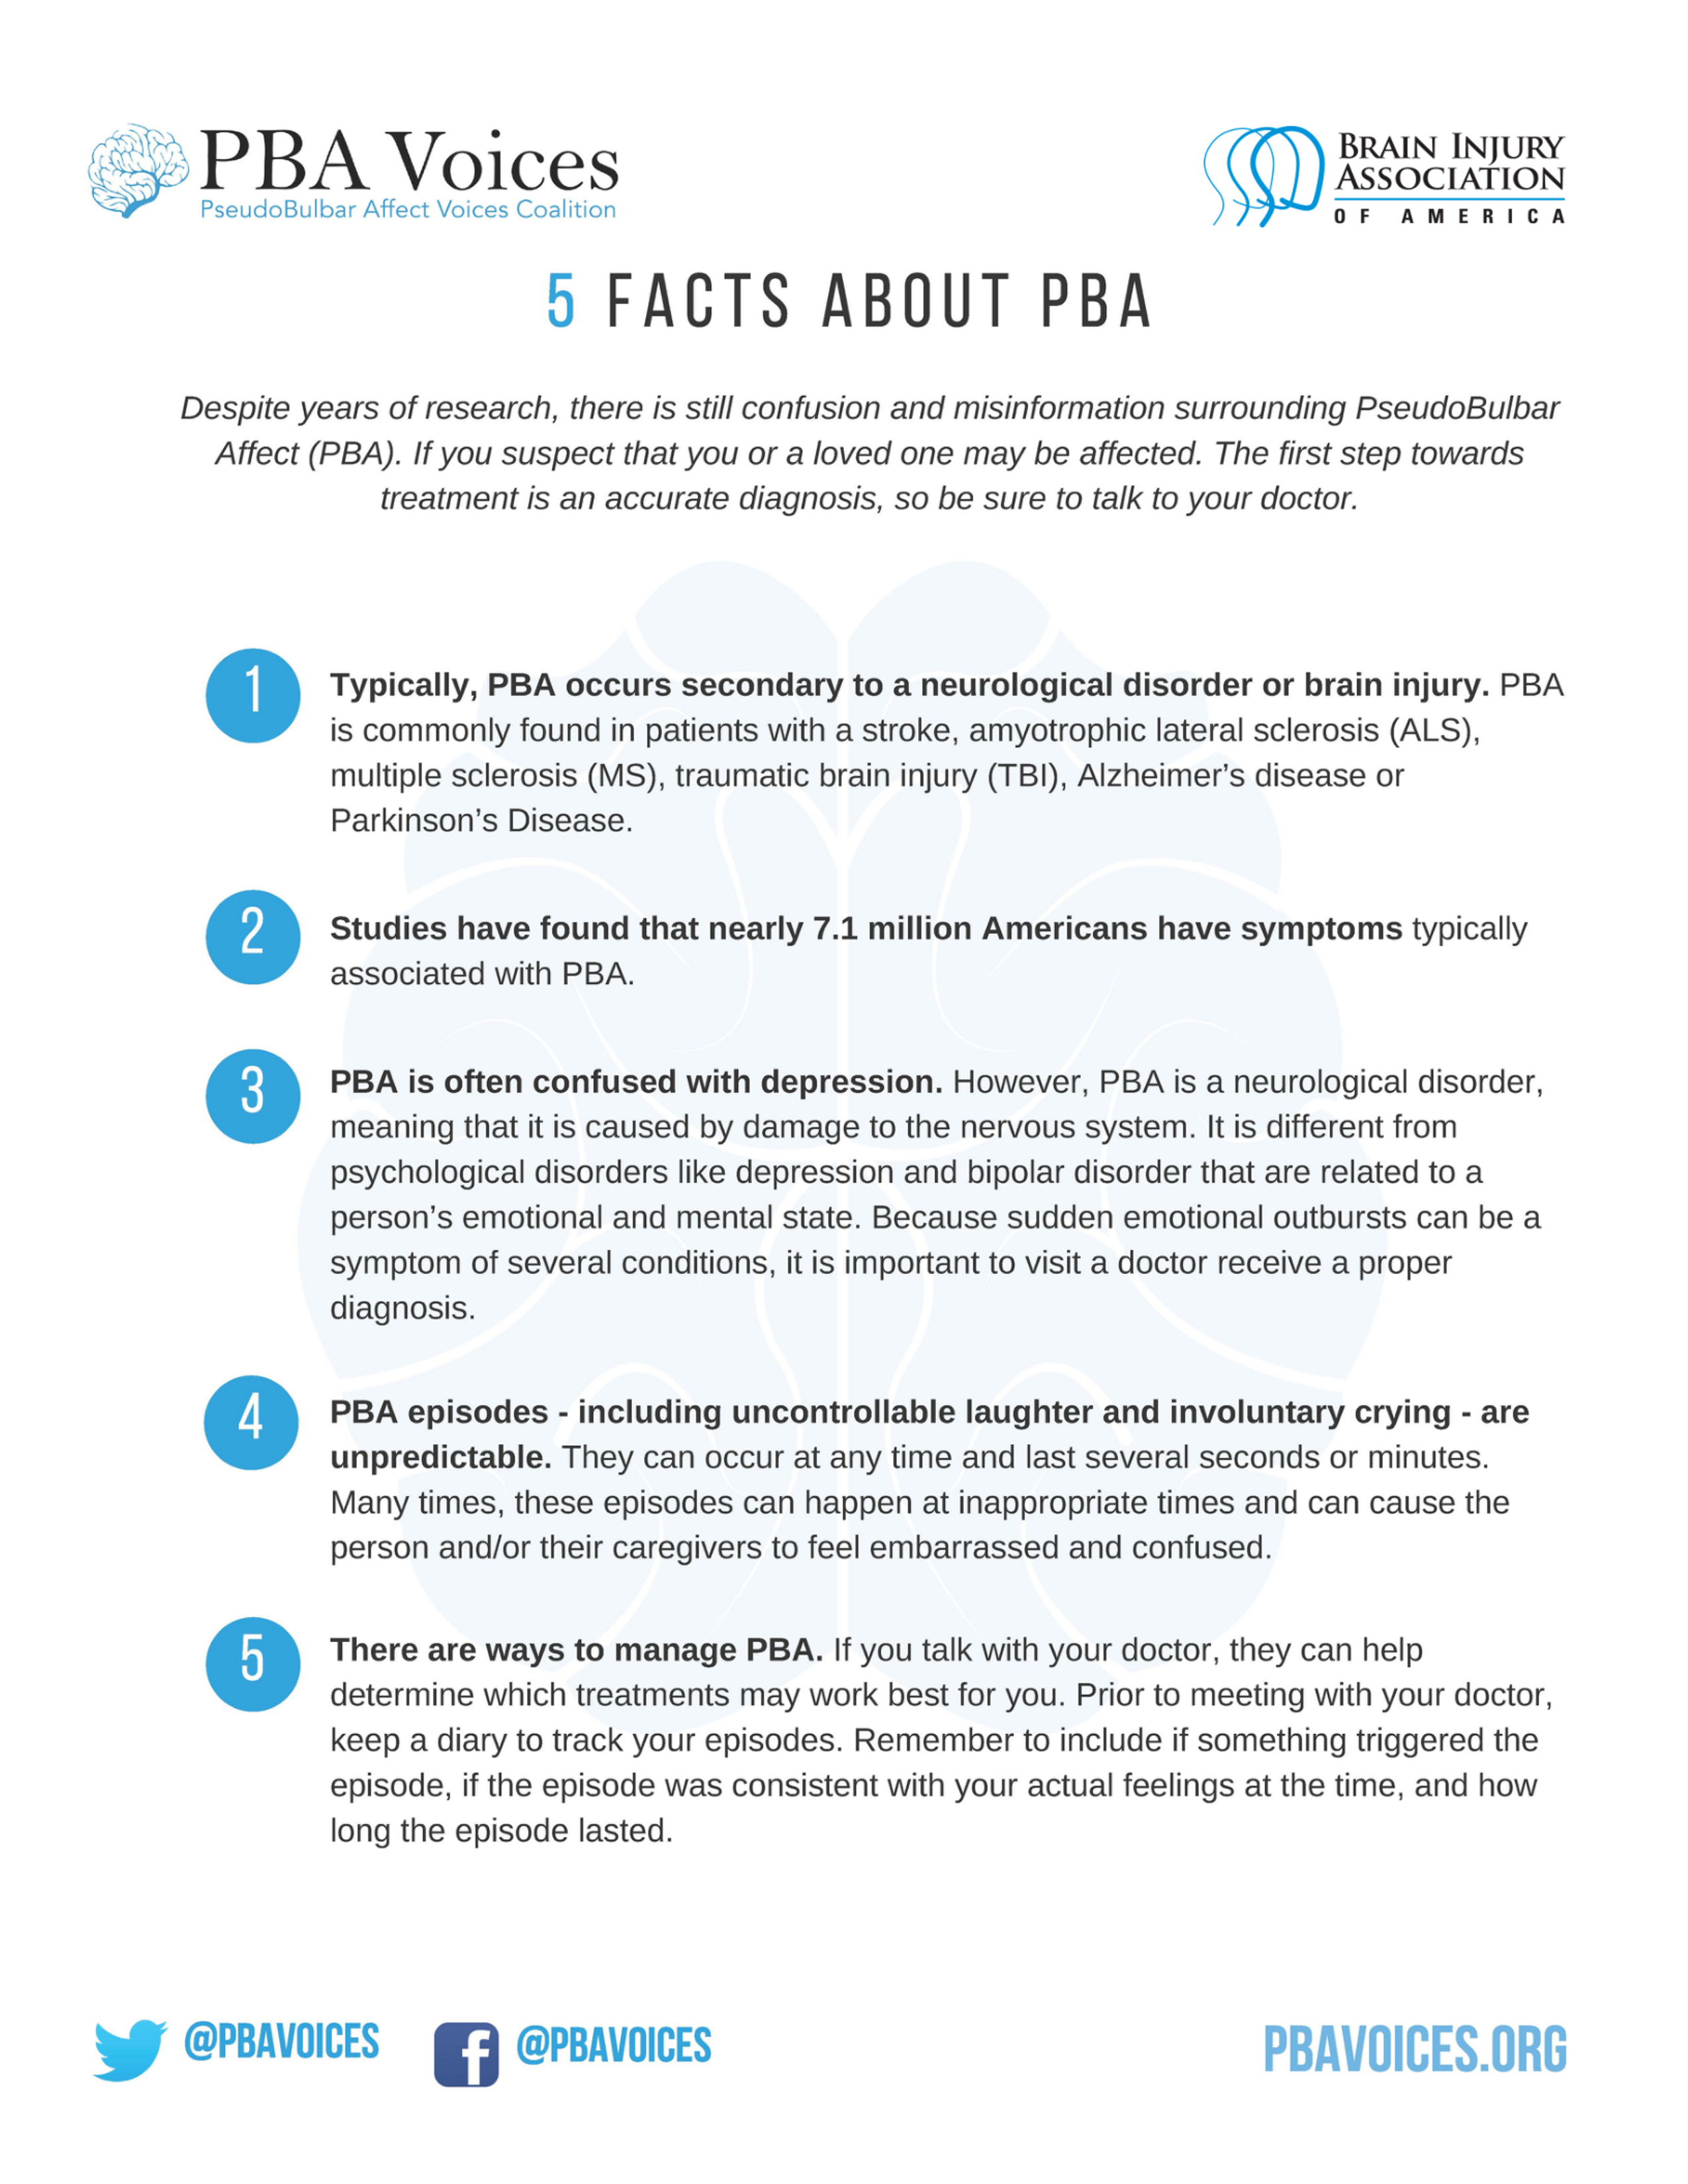 Card - PBA Fact Sheet